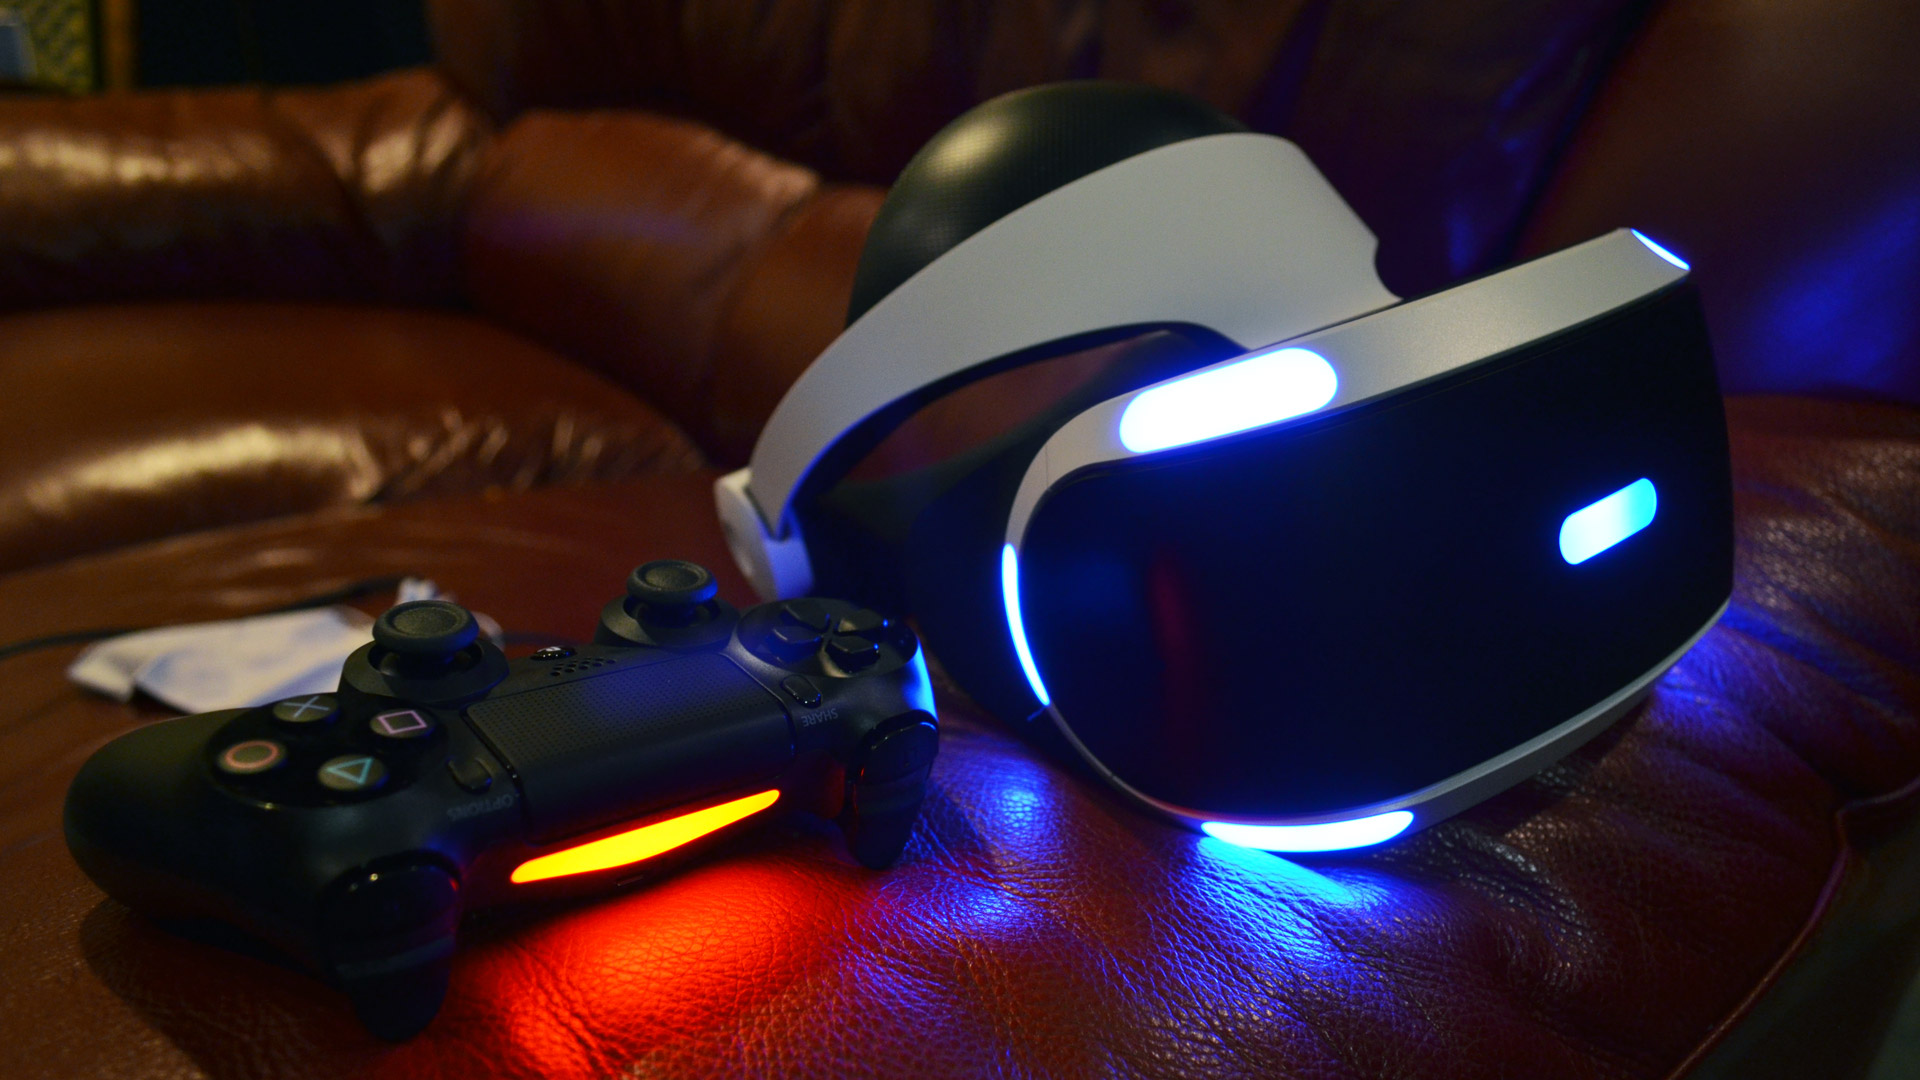 Vr Headset Comparison >> PlayStation VR on PS4 Pro vs. PS4 Comparison Review